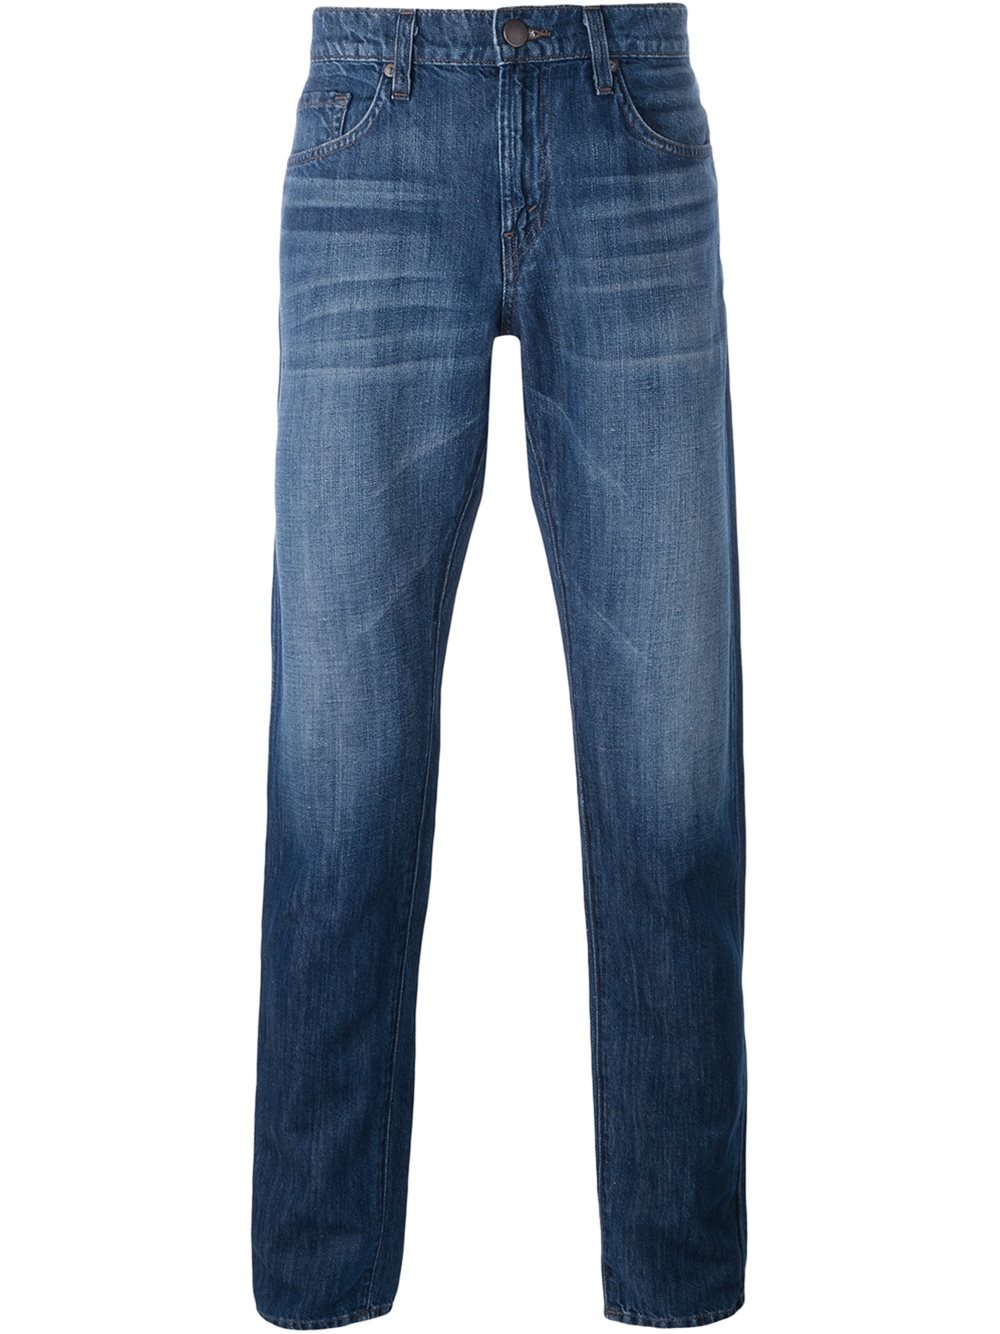 Lyst J Brand Classic Jeans In Blue For Men